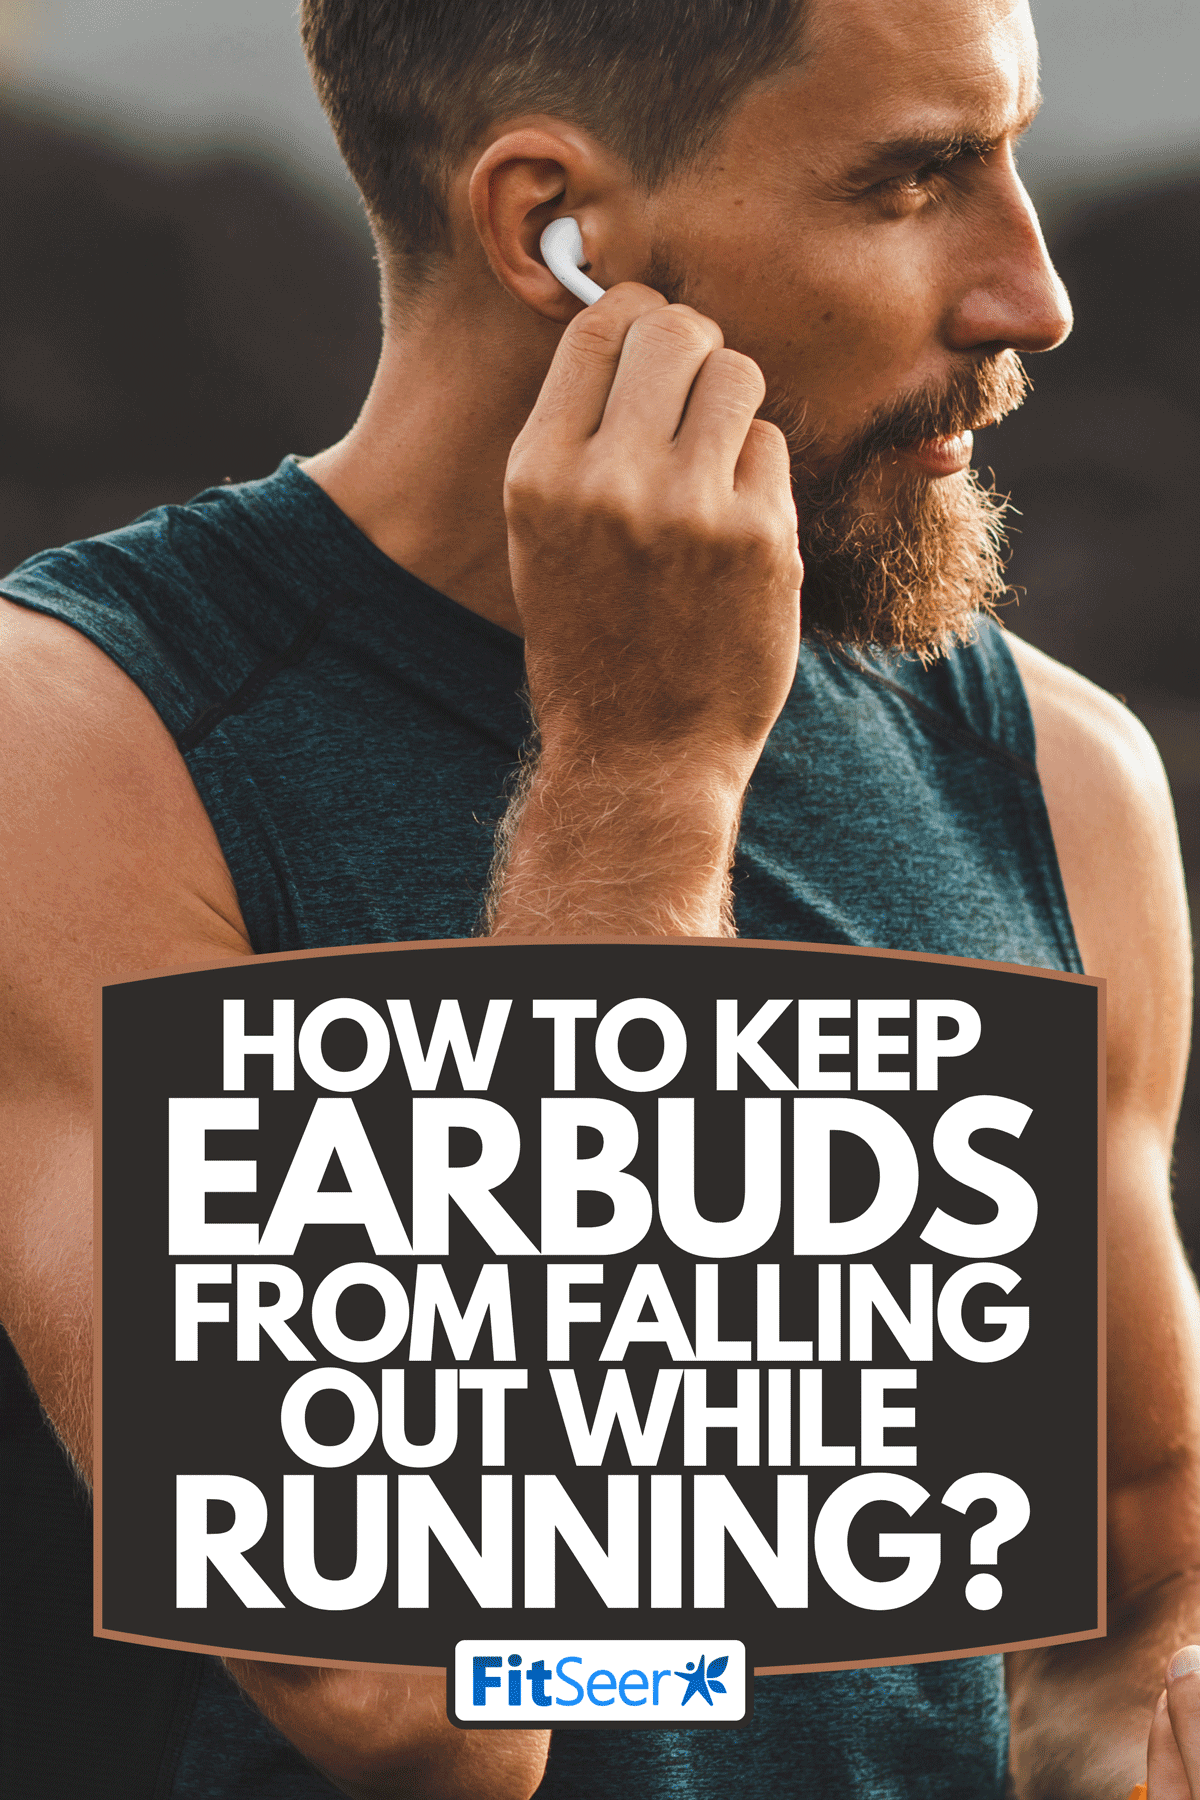 Man using wireless earphones AirPods on running outdoors, How To Keep Earbuds From Falling Out While Running? [6 Helpful Tips]